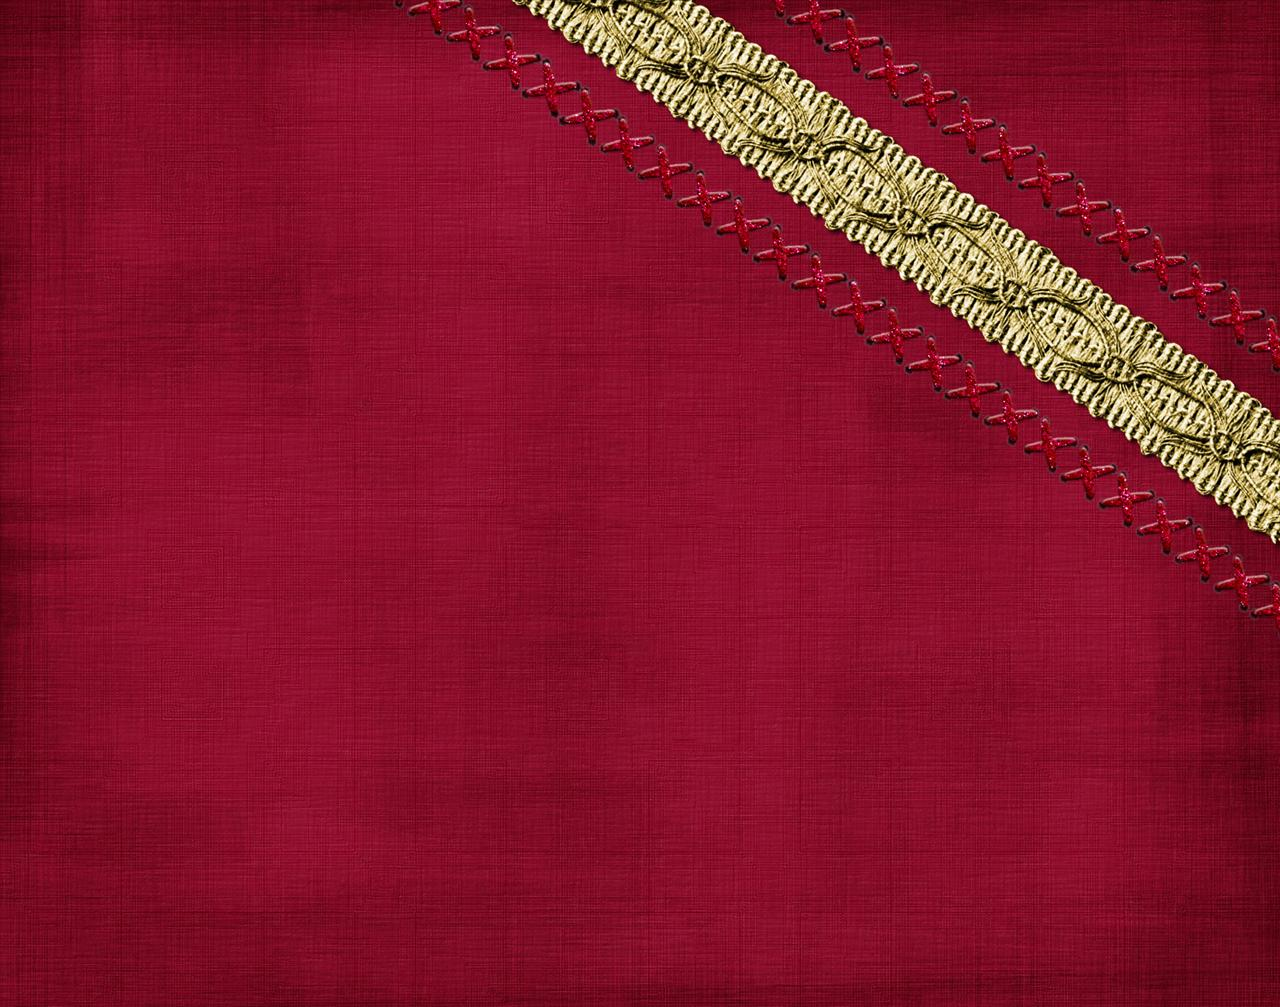 gold and burgundy background 2